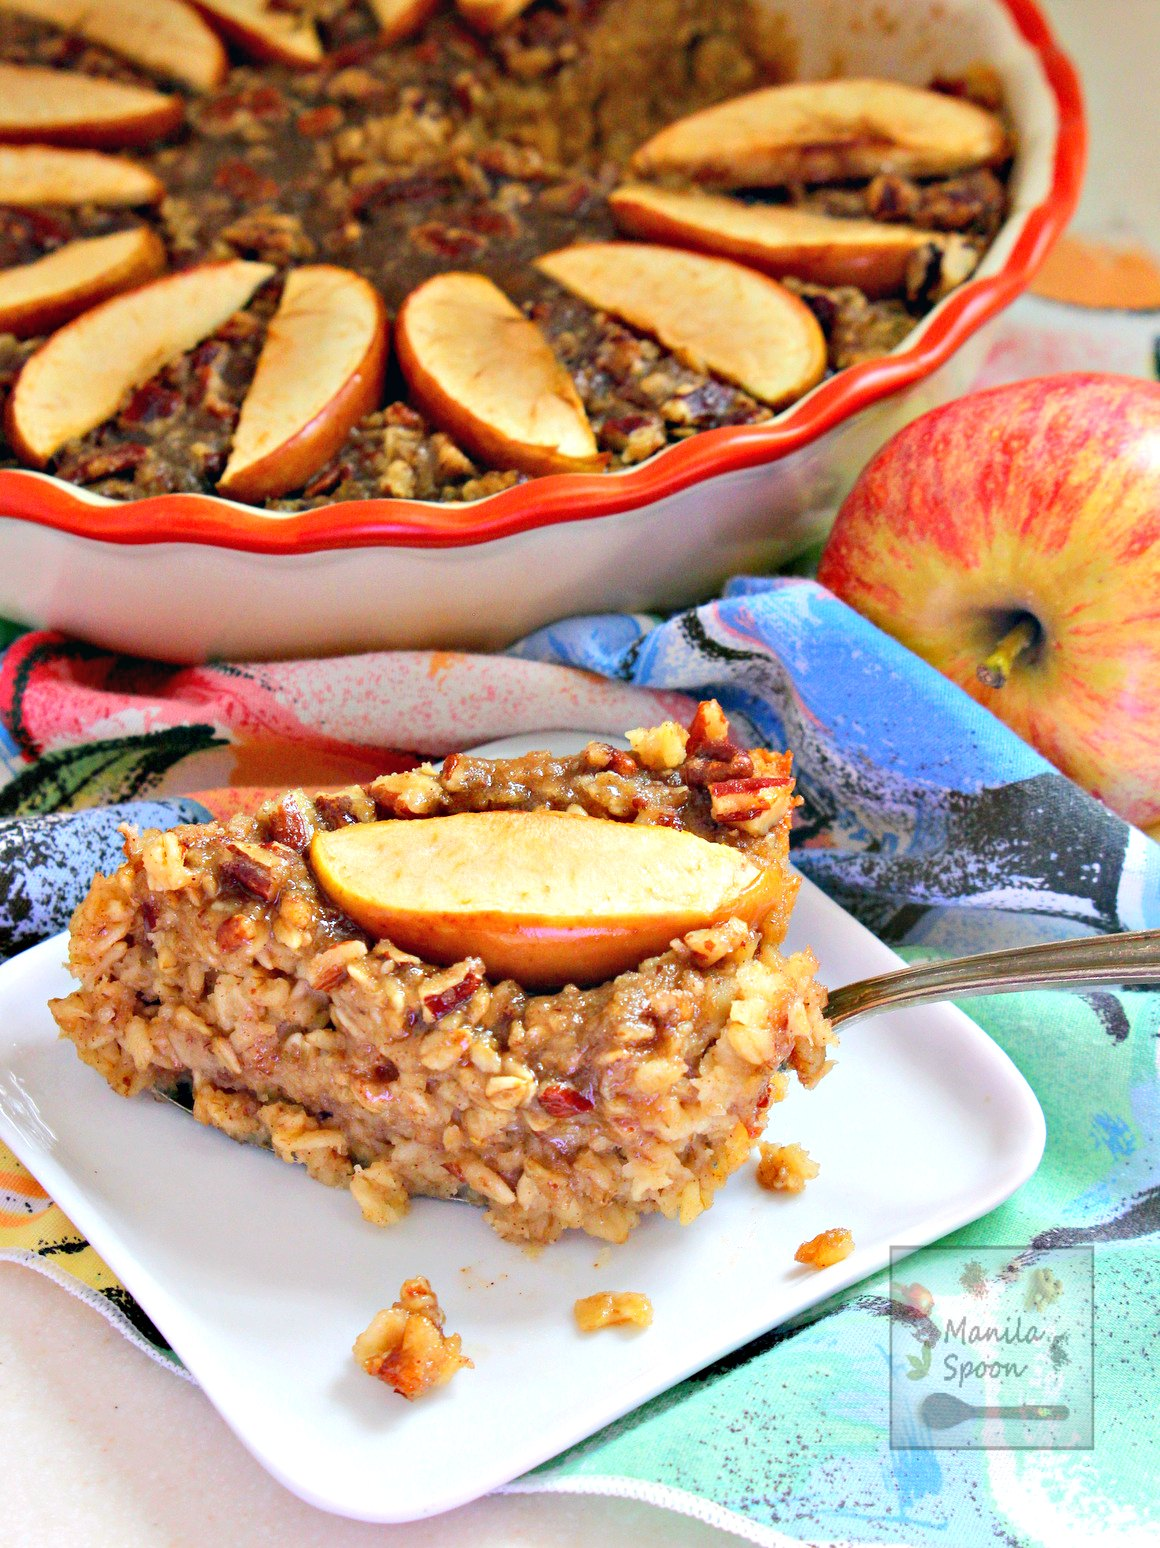 Cinnamon flavored oatmeal with apples and a buttery, crunchy praline topping is a delicious fall or winter breakfast or brunch dish! | manilaspoon.com